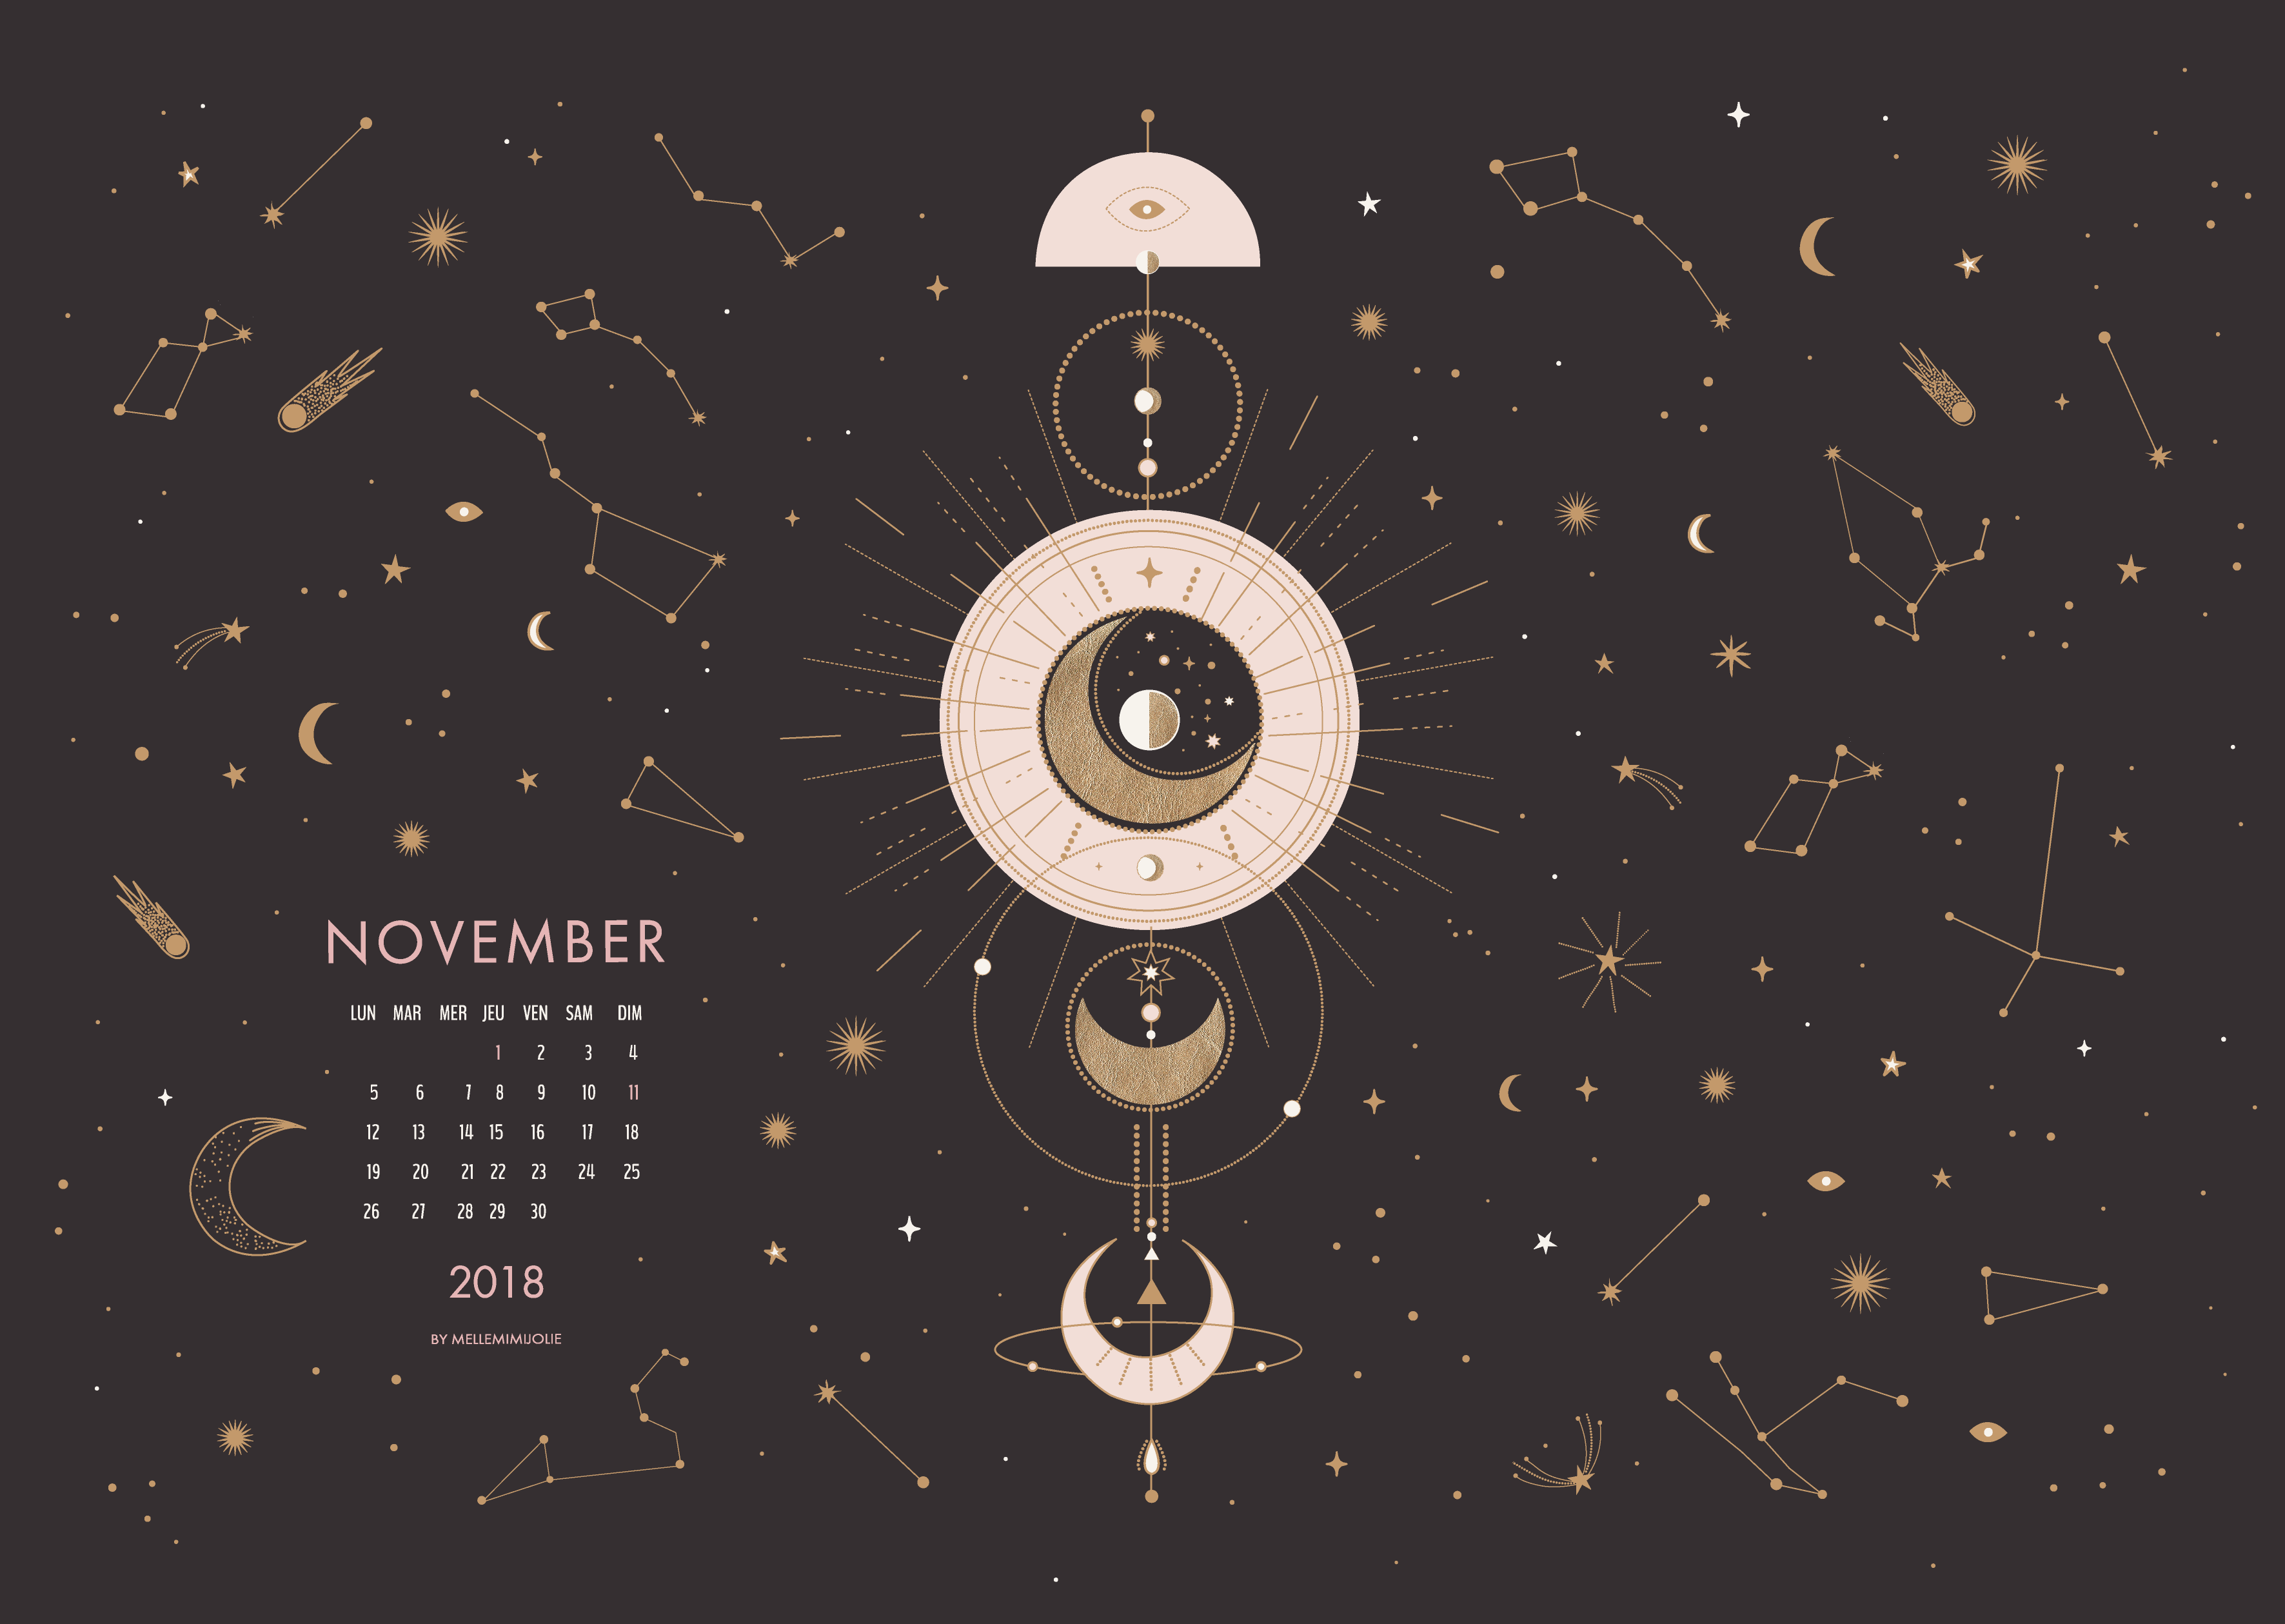 constellations-novembre2018-mimijolie